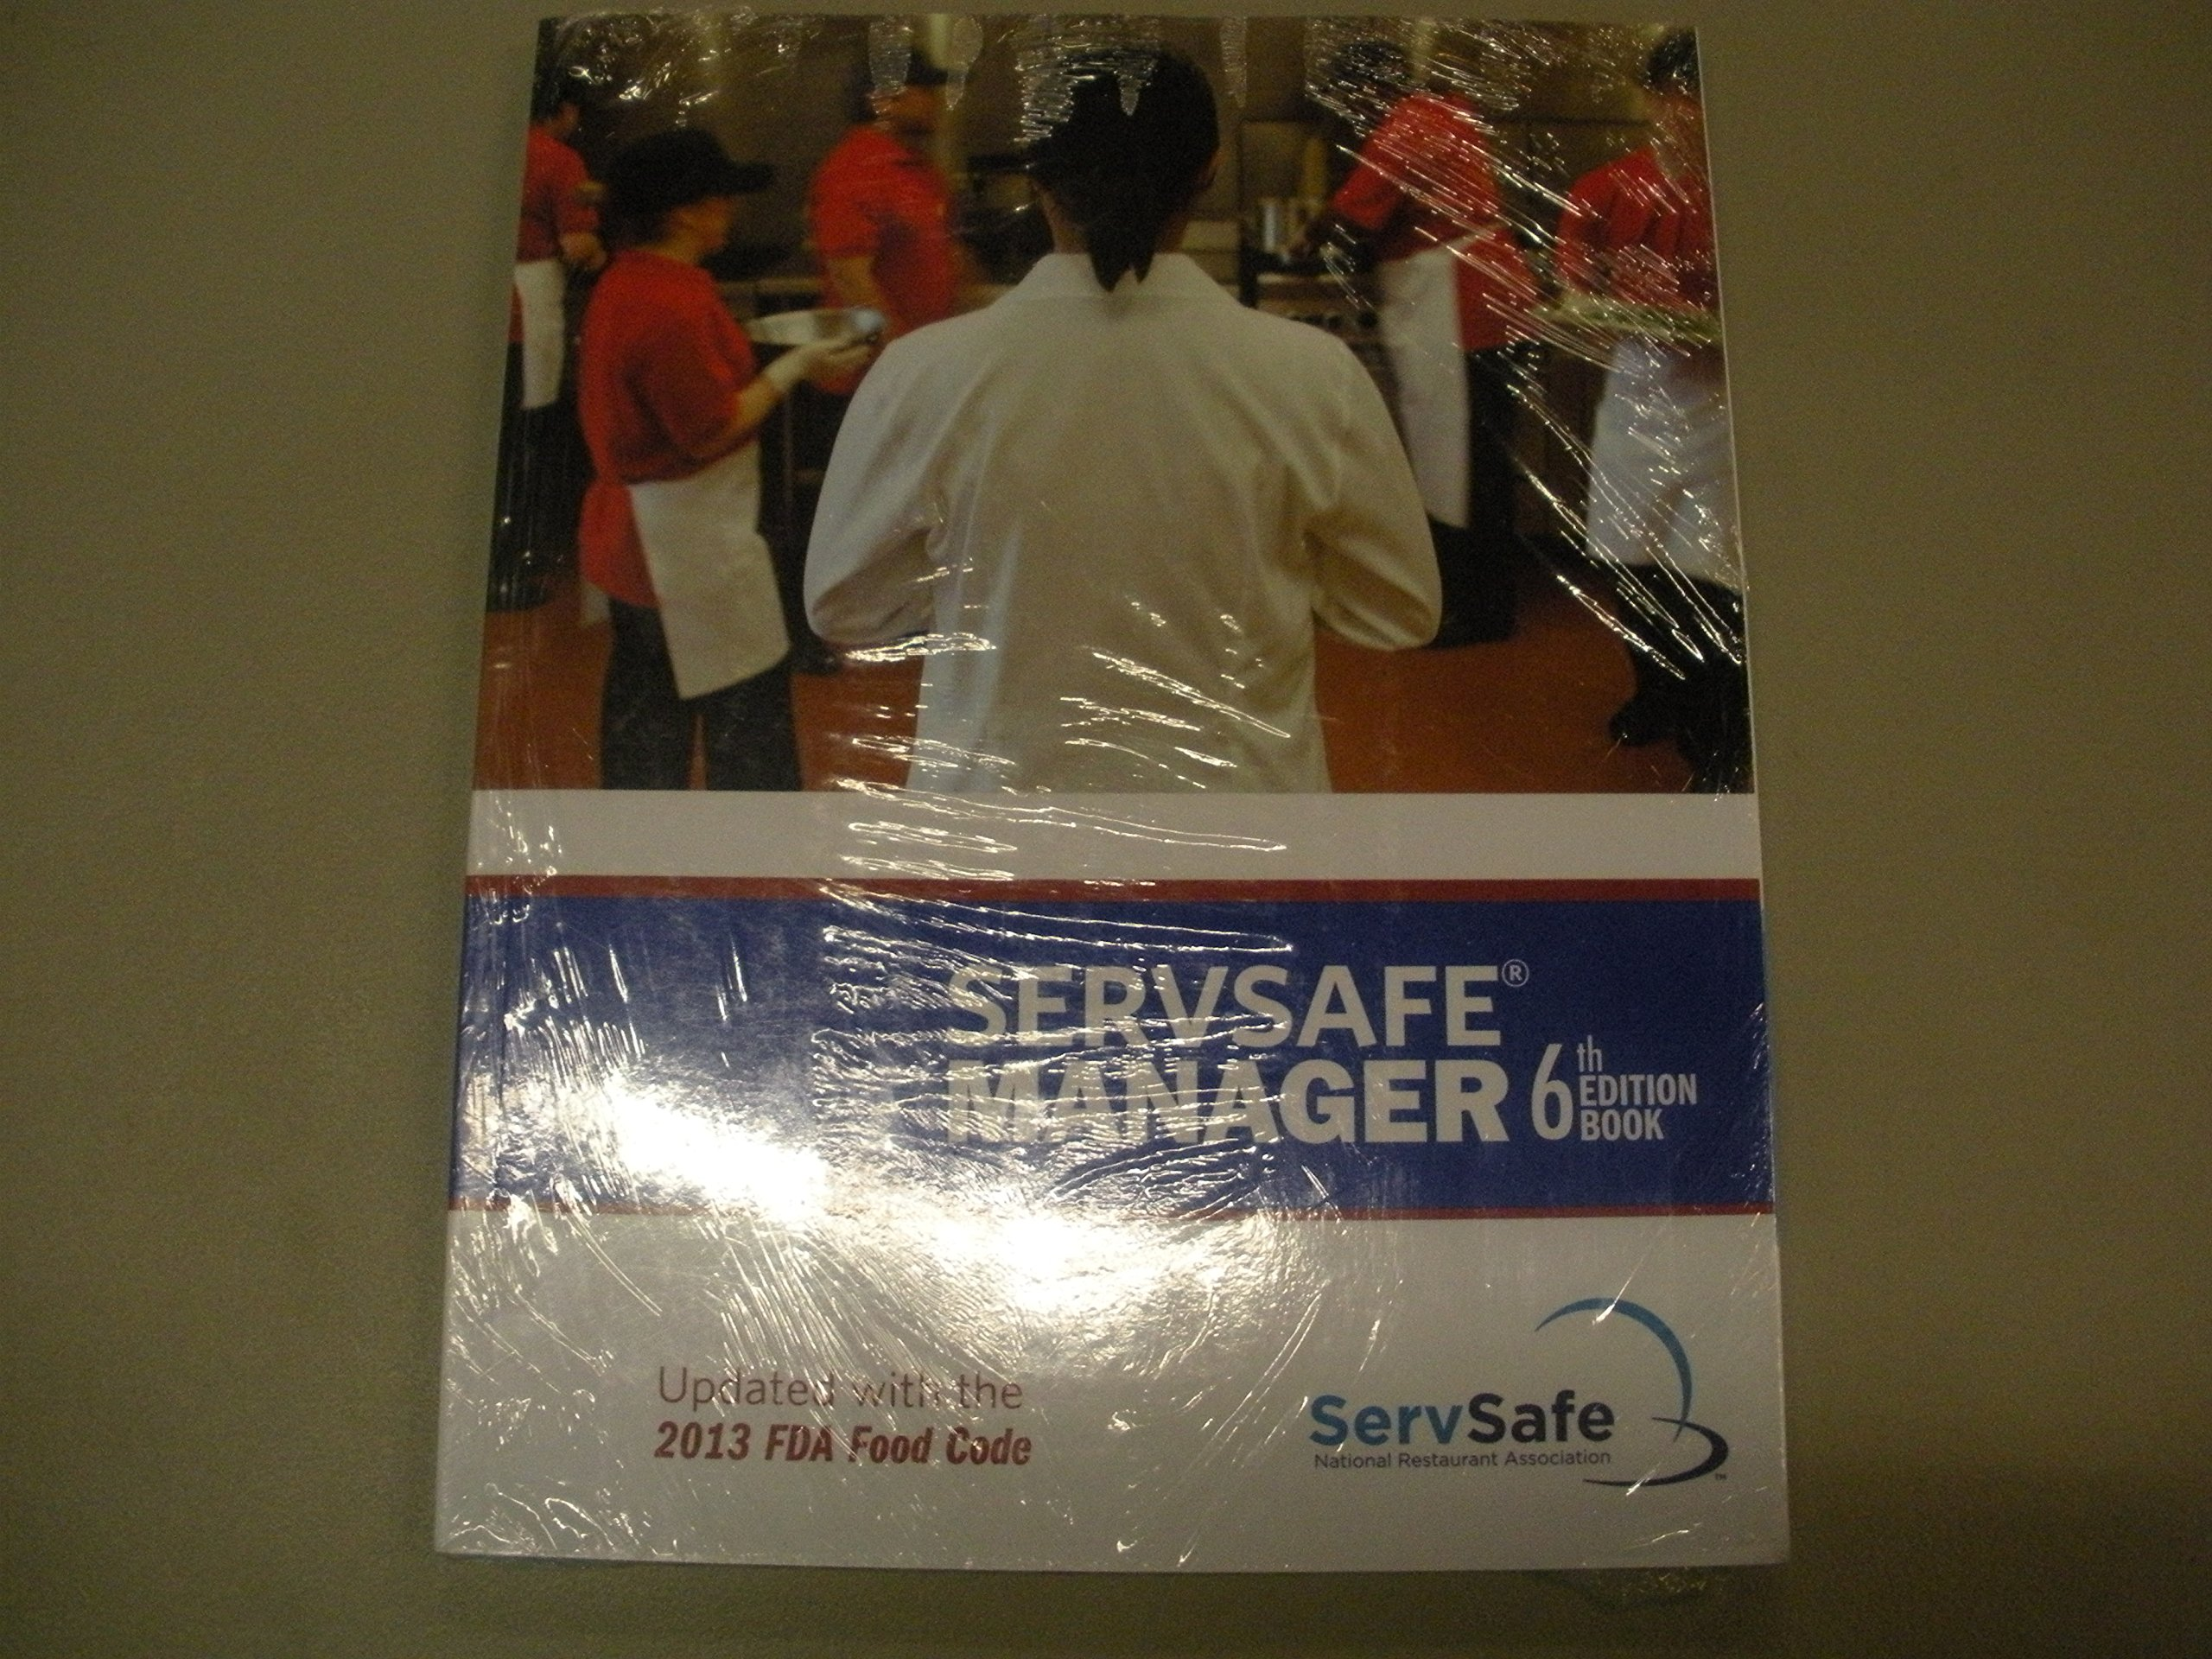 servsafe manager 6th edition updated the 2013 fda food code servsafe manager 6th edition updated the 2013 fda food code esx6r exam answer sheet national restaurant association 9781582803104 amazon com